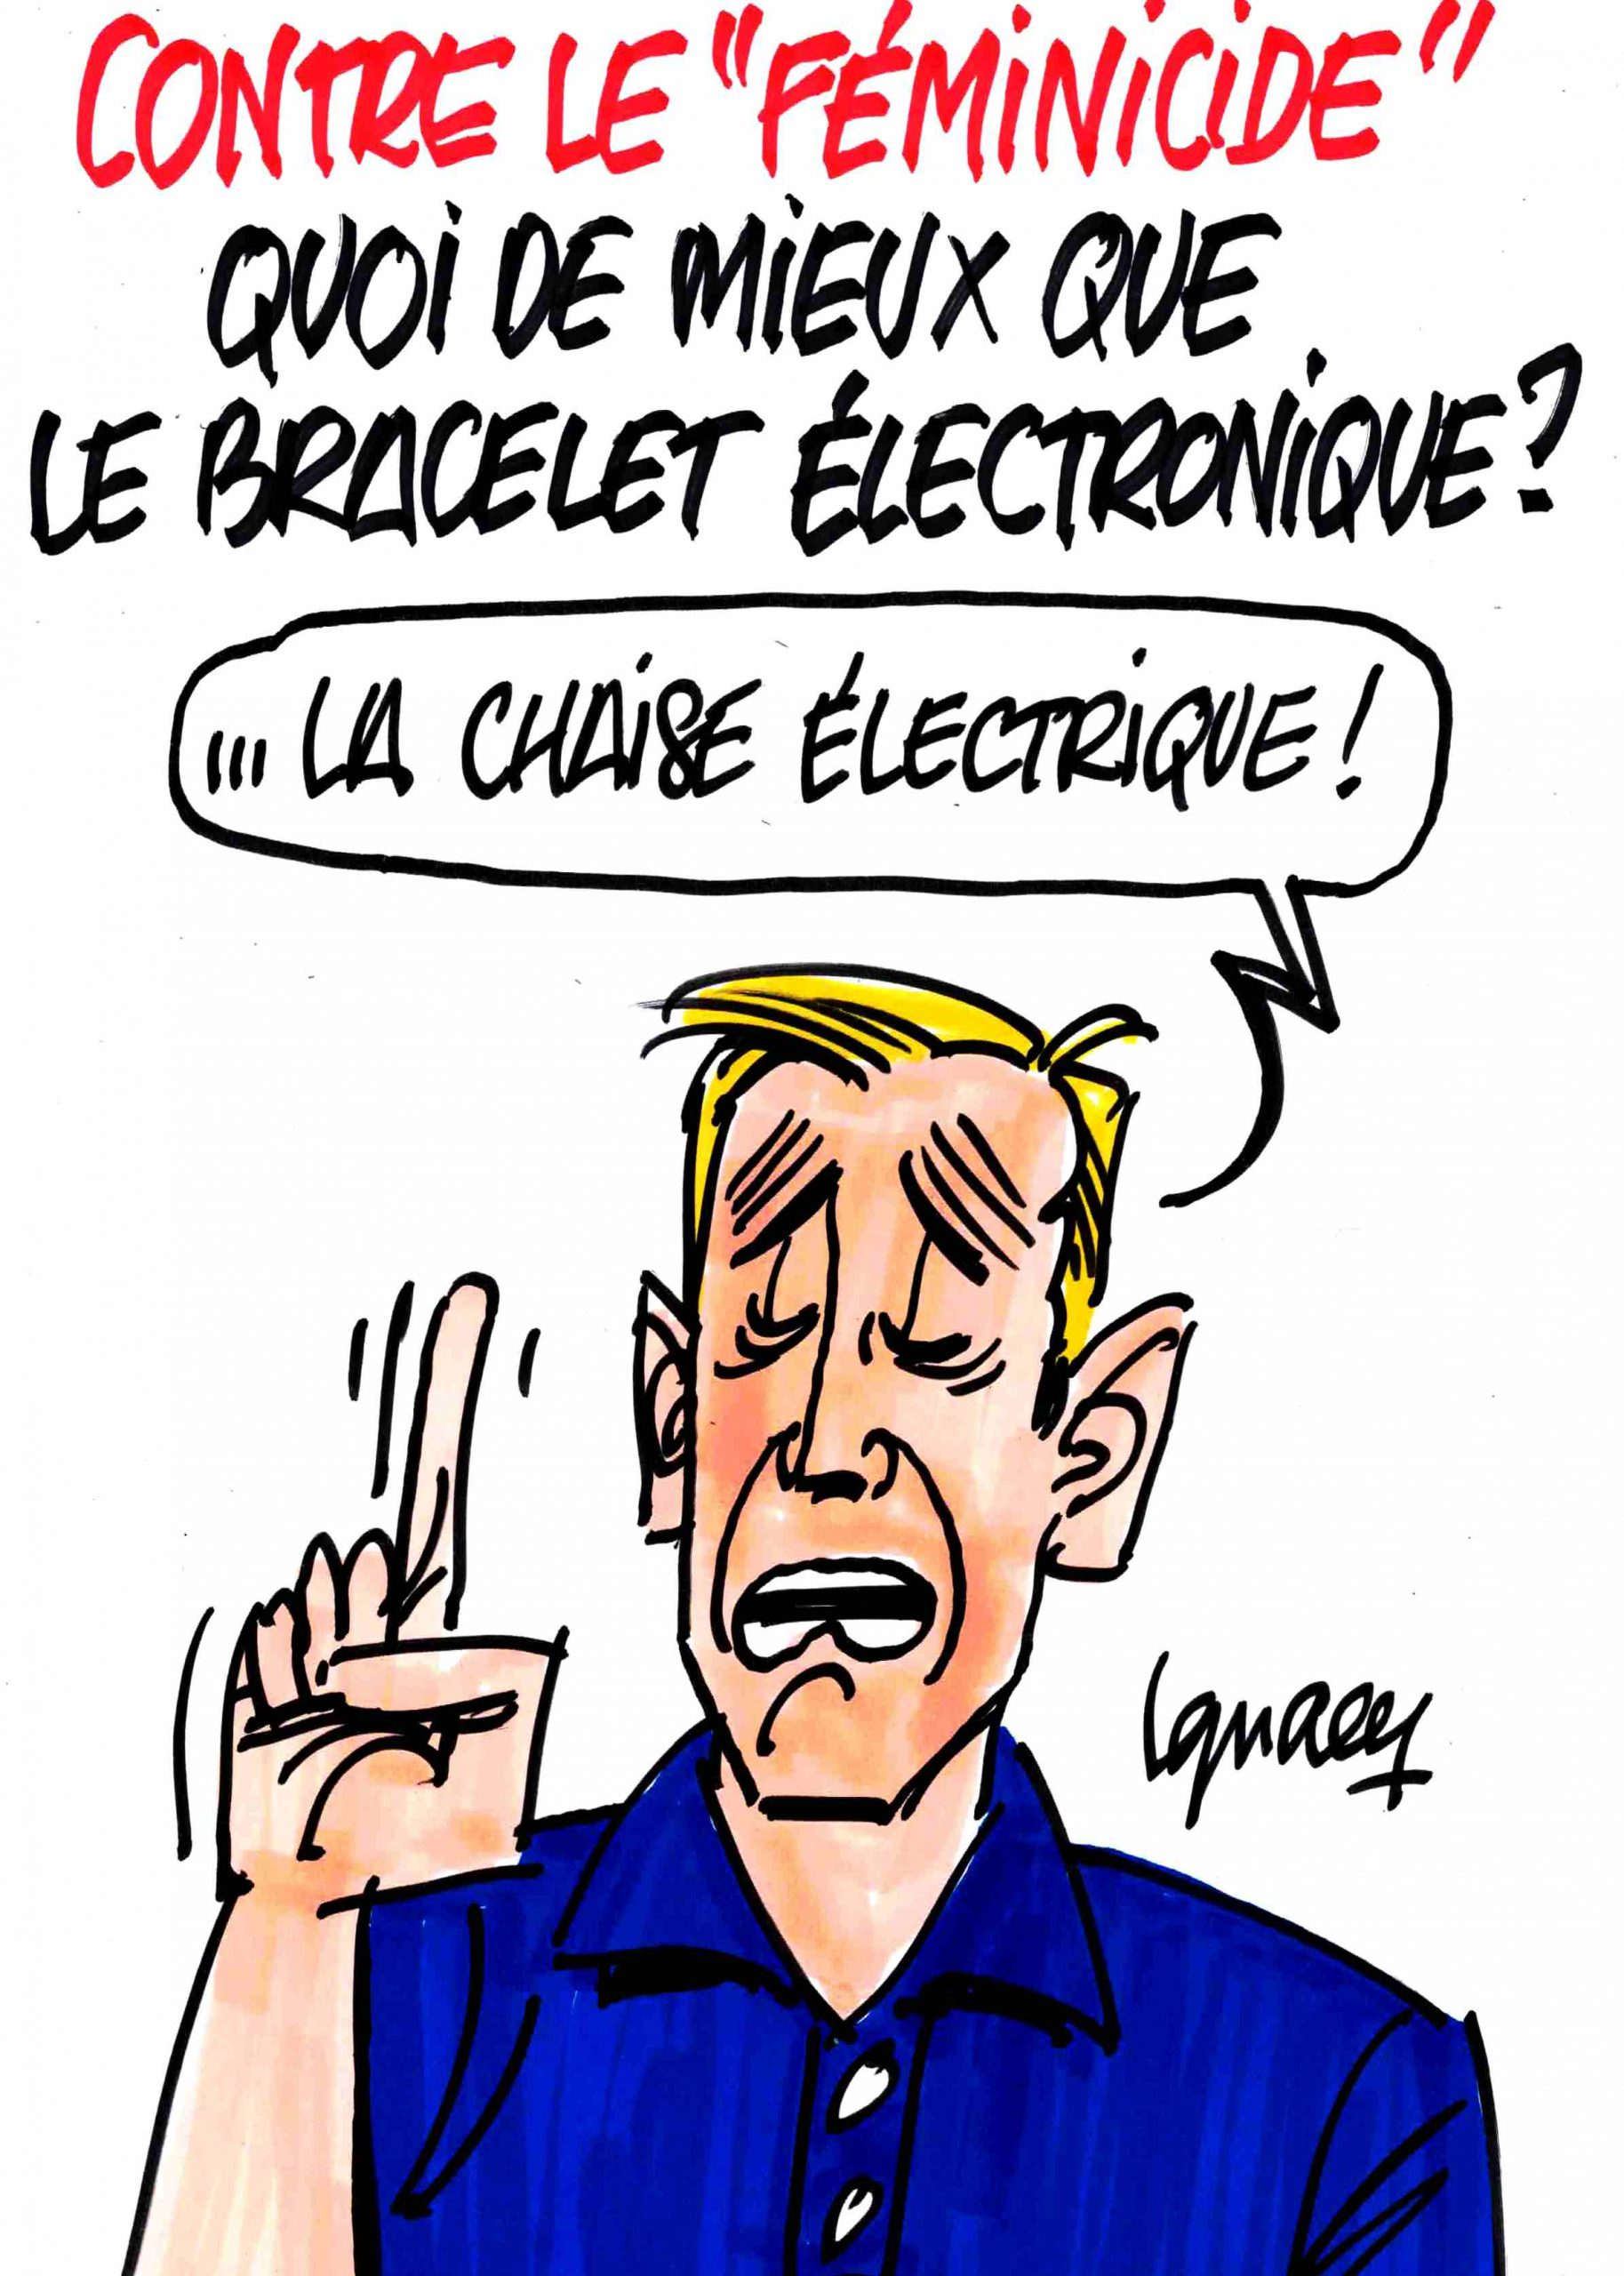 Ignace - Y a-t-il mieux que le bracelet électronique ?